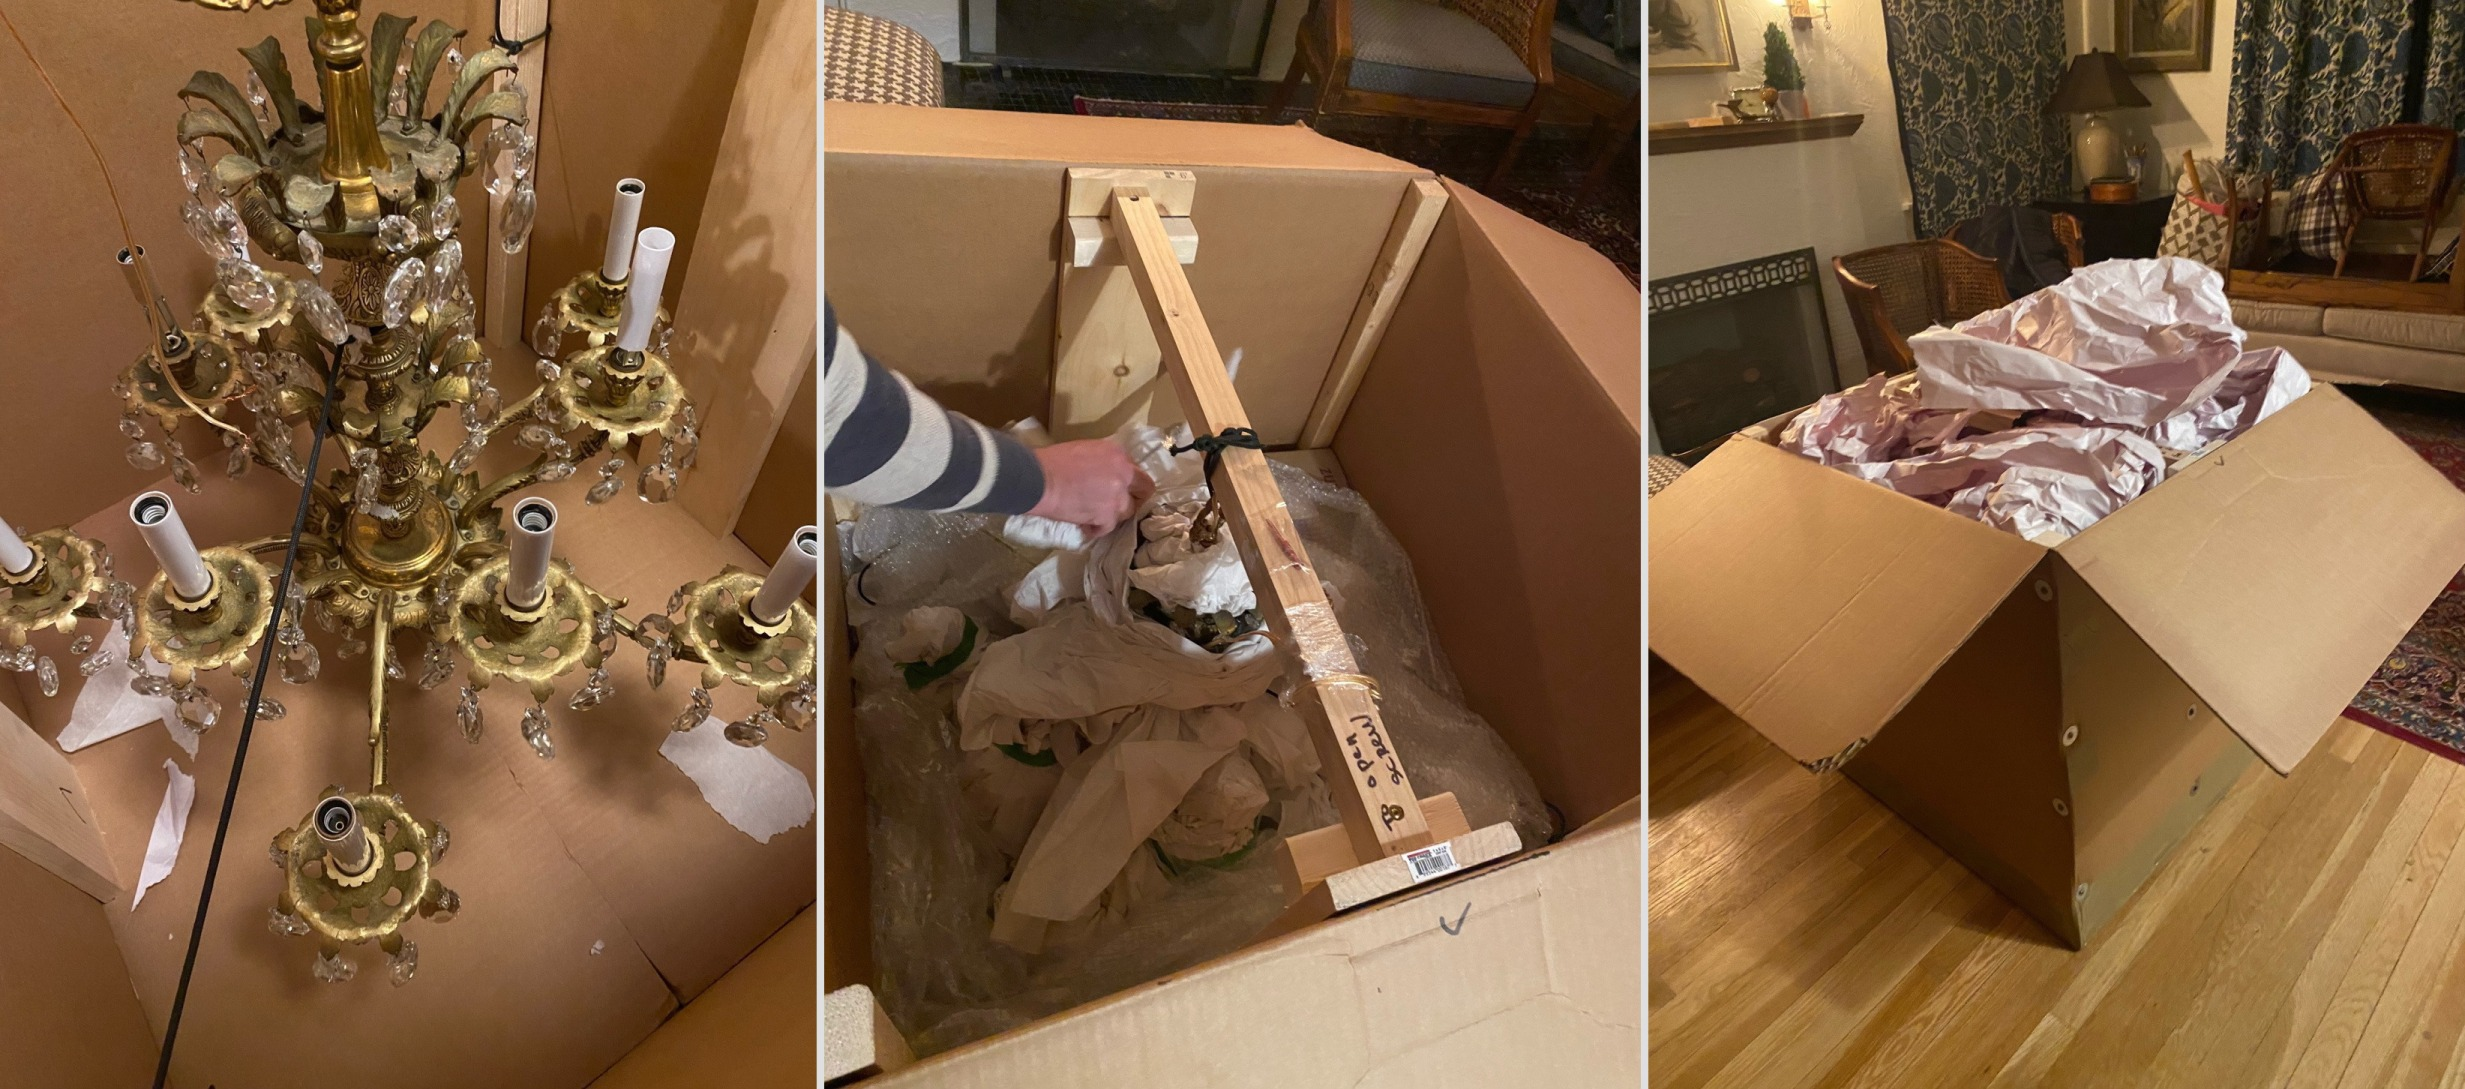 How to Ship a Chandelier from New York to New Mexico?